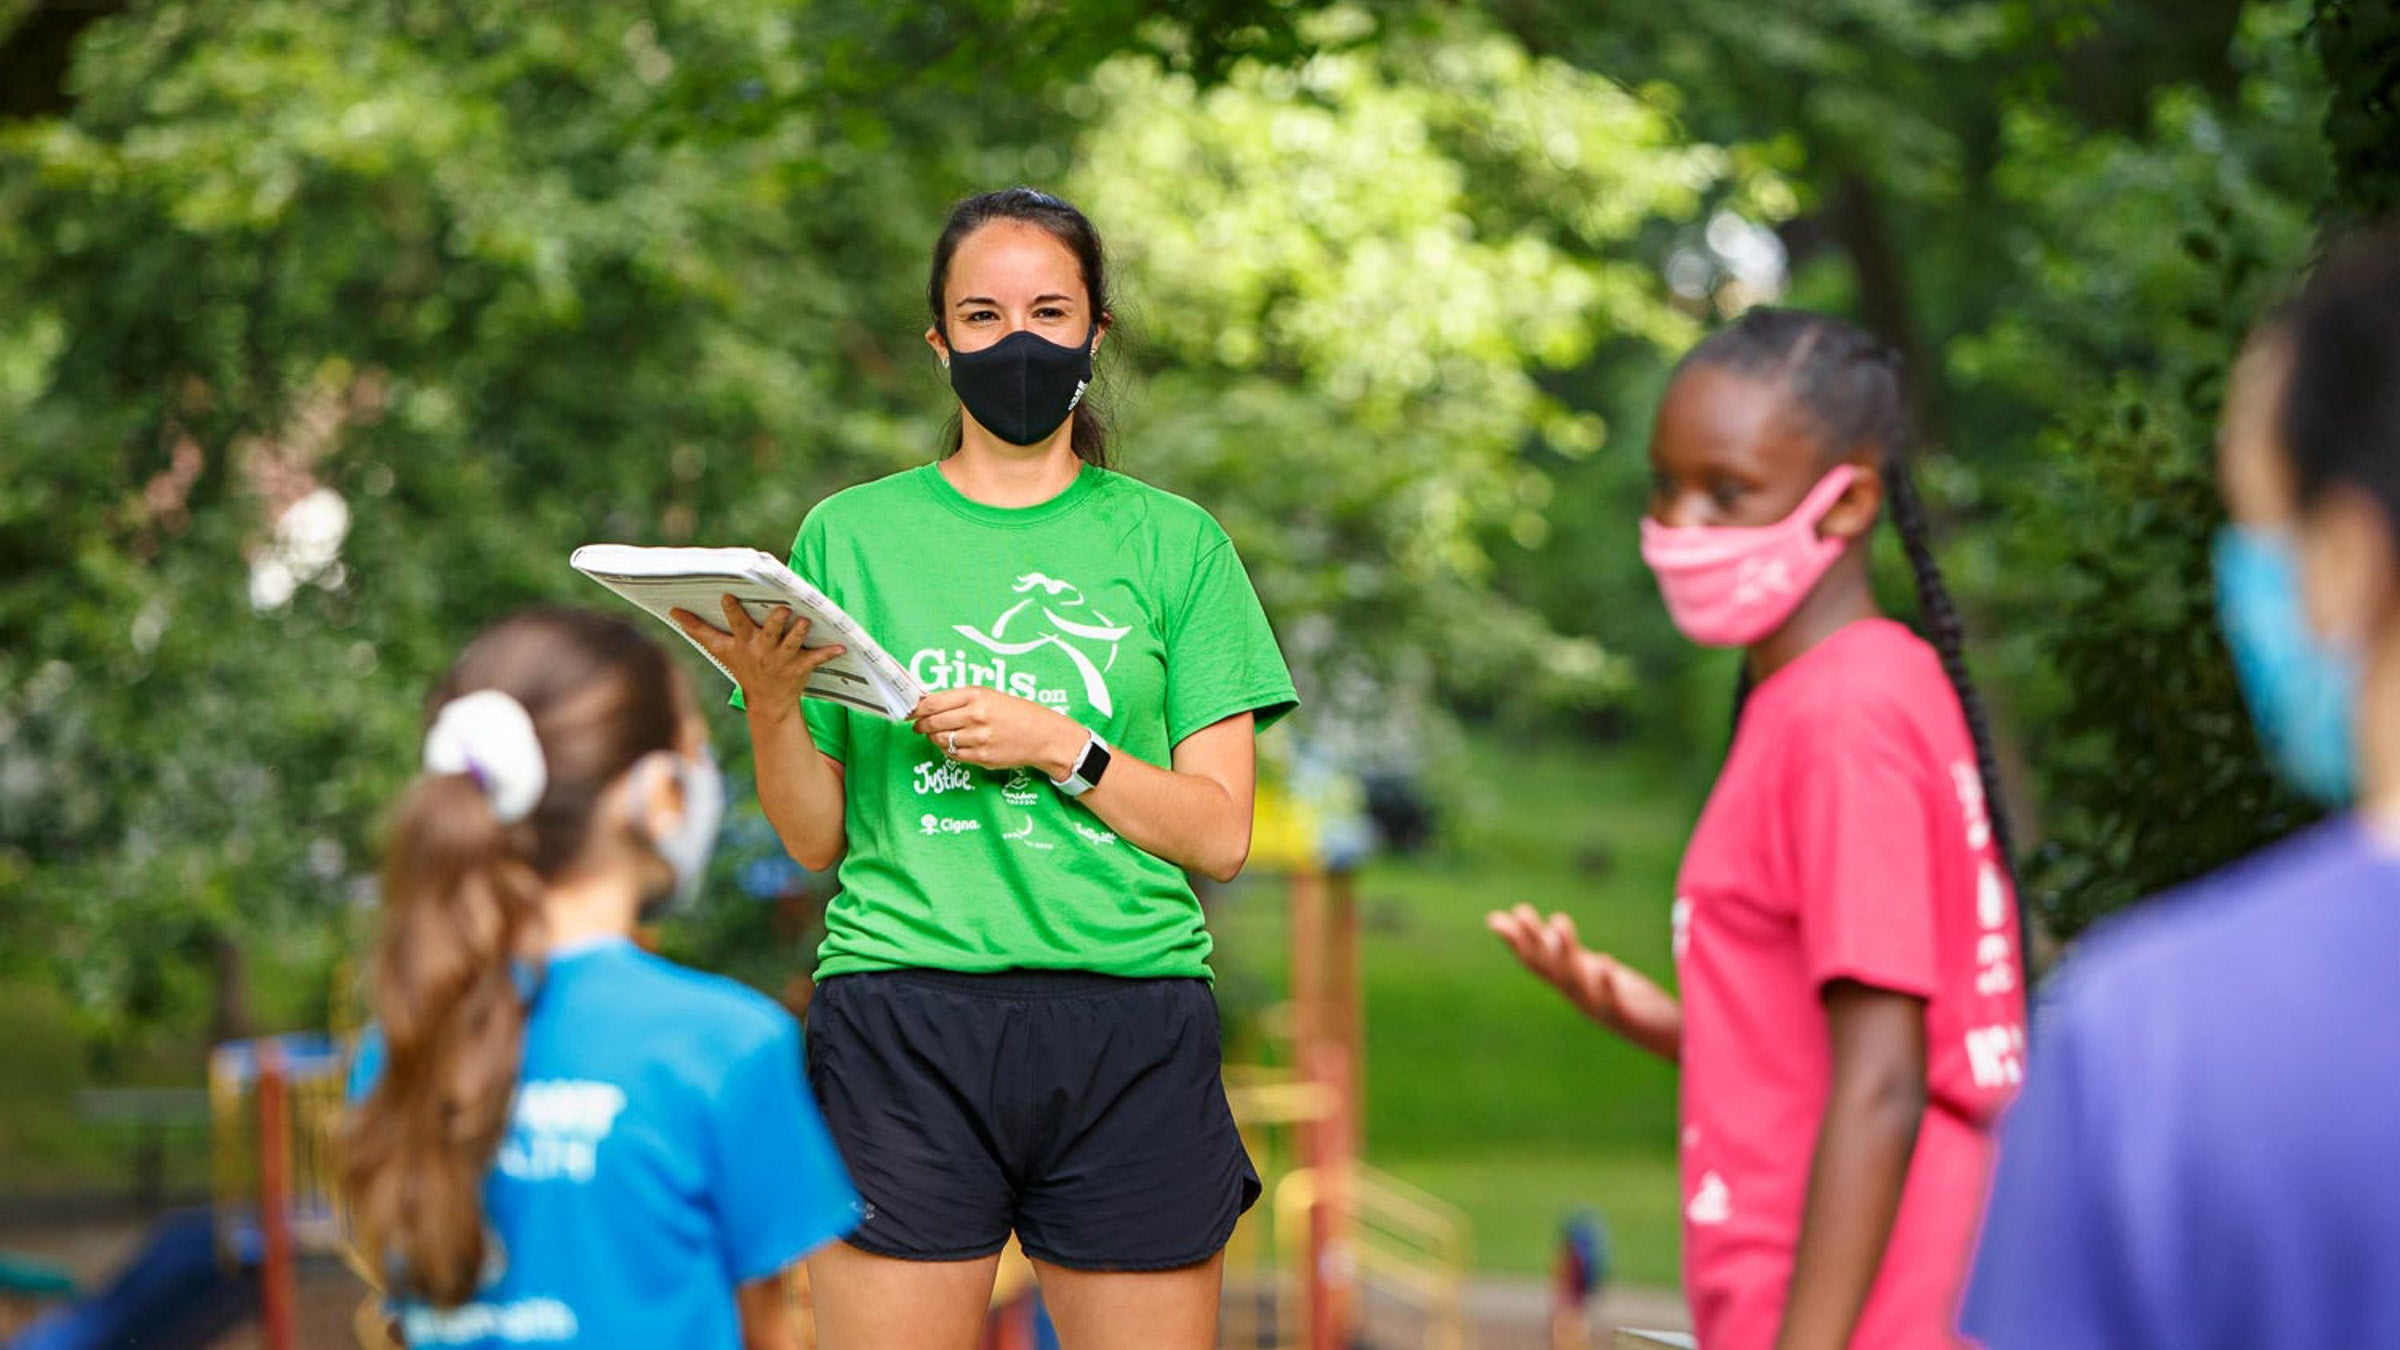 No School Sports? No Problem, Thanks to Girls on the Run